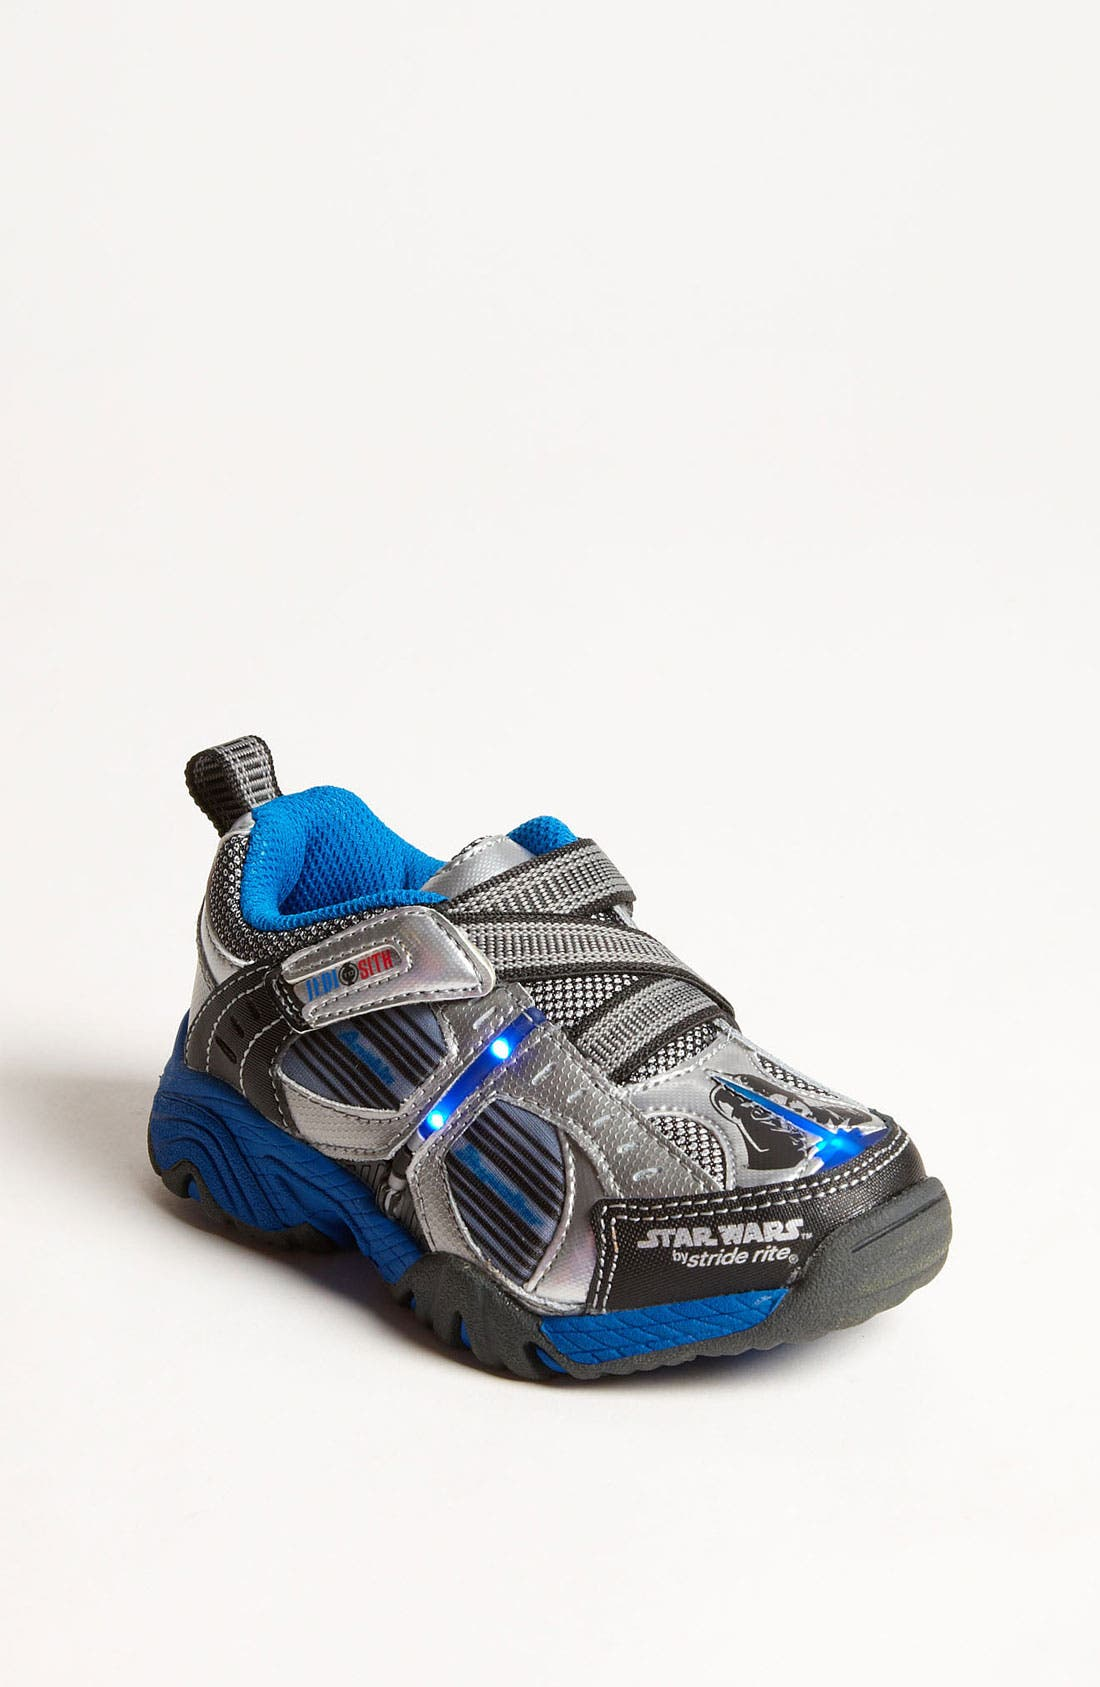 Alternate Image 1 Selected - Stride Rite 'Star Wars™ - Jedi to Sith Shadow Lights' Sneaker (Toddler & Little Kid)